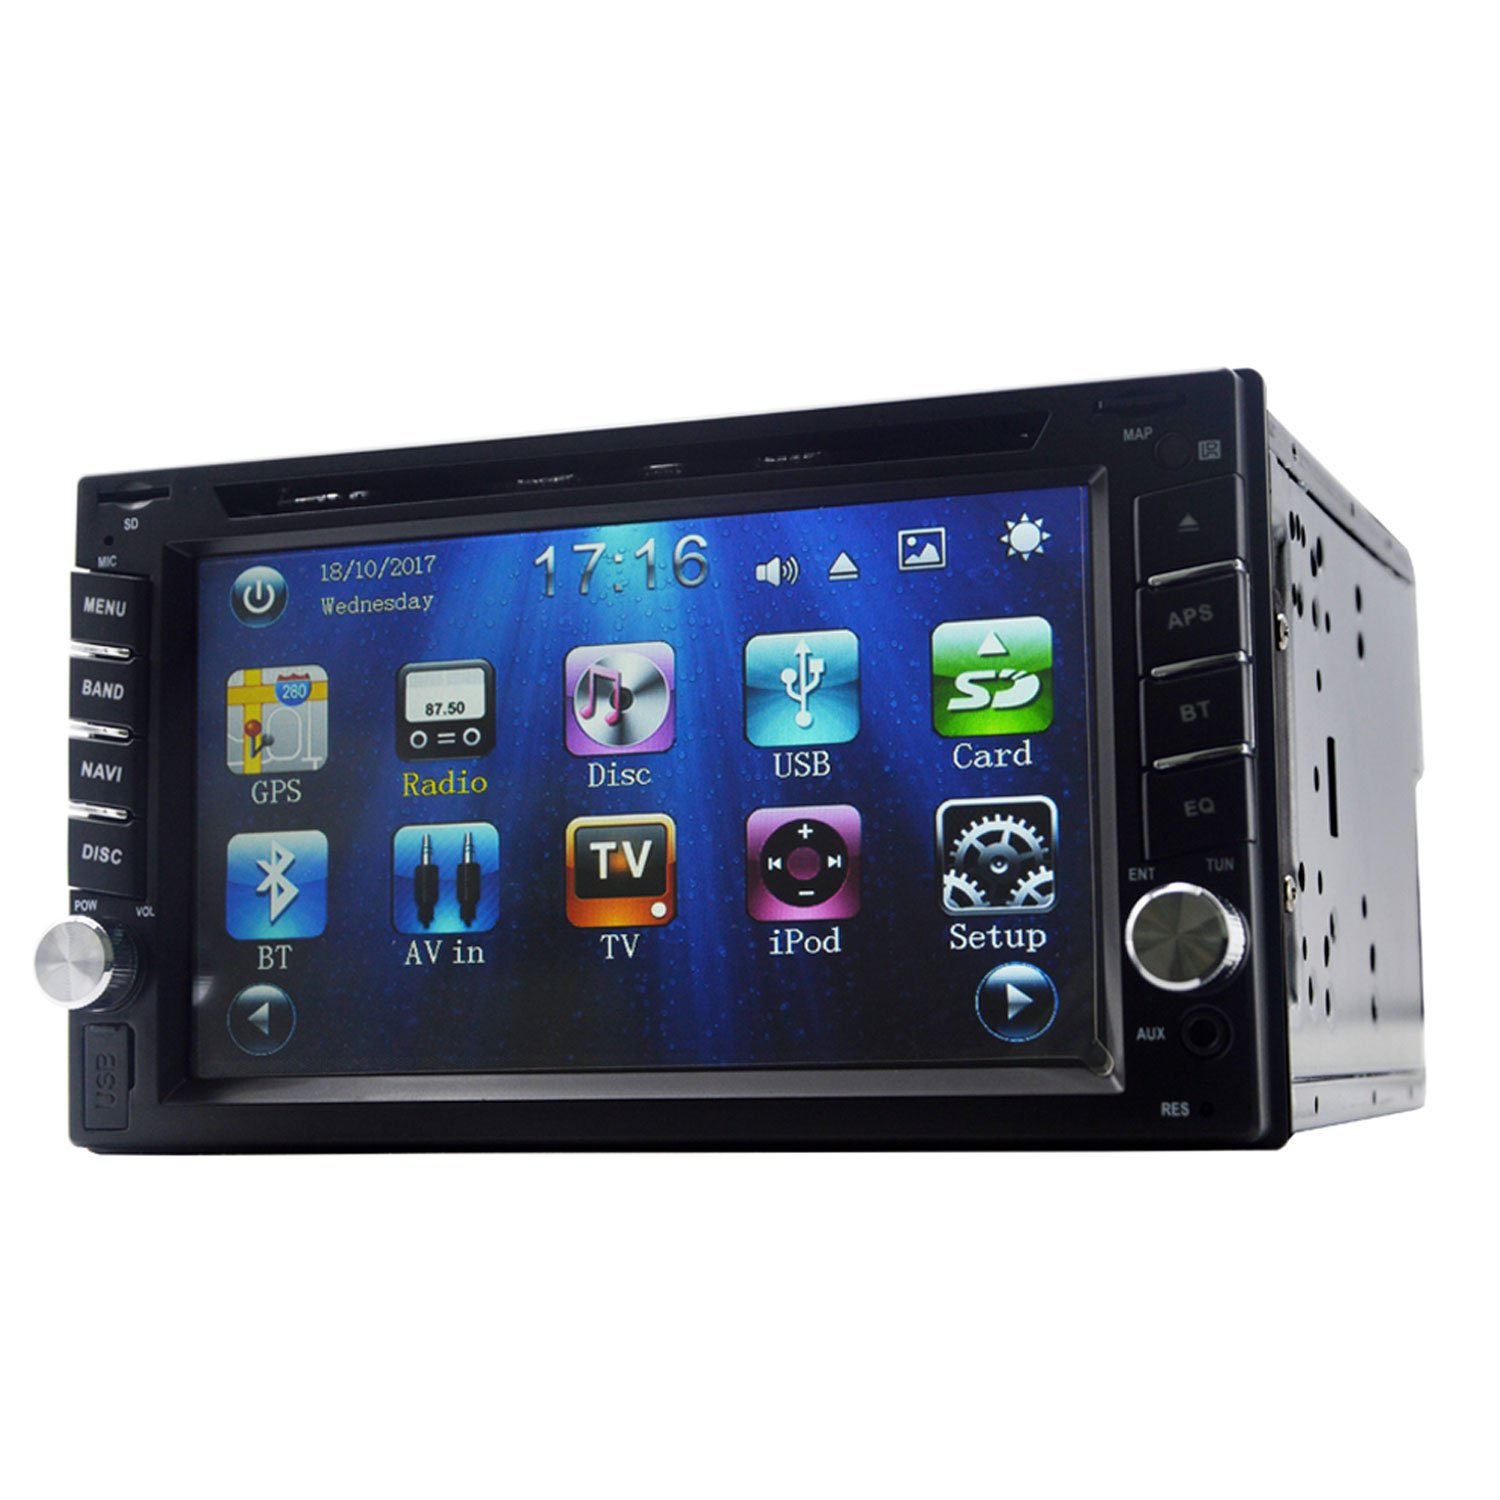 Yody Audio Double Din 6.2'' Car DVD Player Touchscreen Bluetooth DVD/CD/MP3/USB/SD AM/FM RDS Radio Car Stereo In Dash with Backup Camera Remote Control (No Map Card)